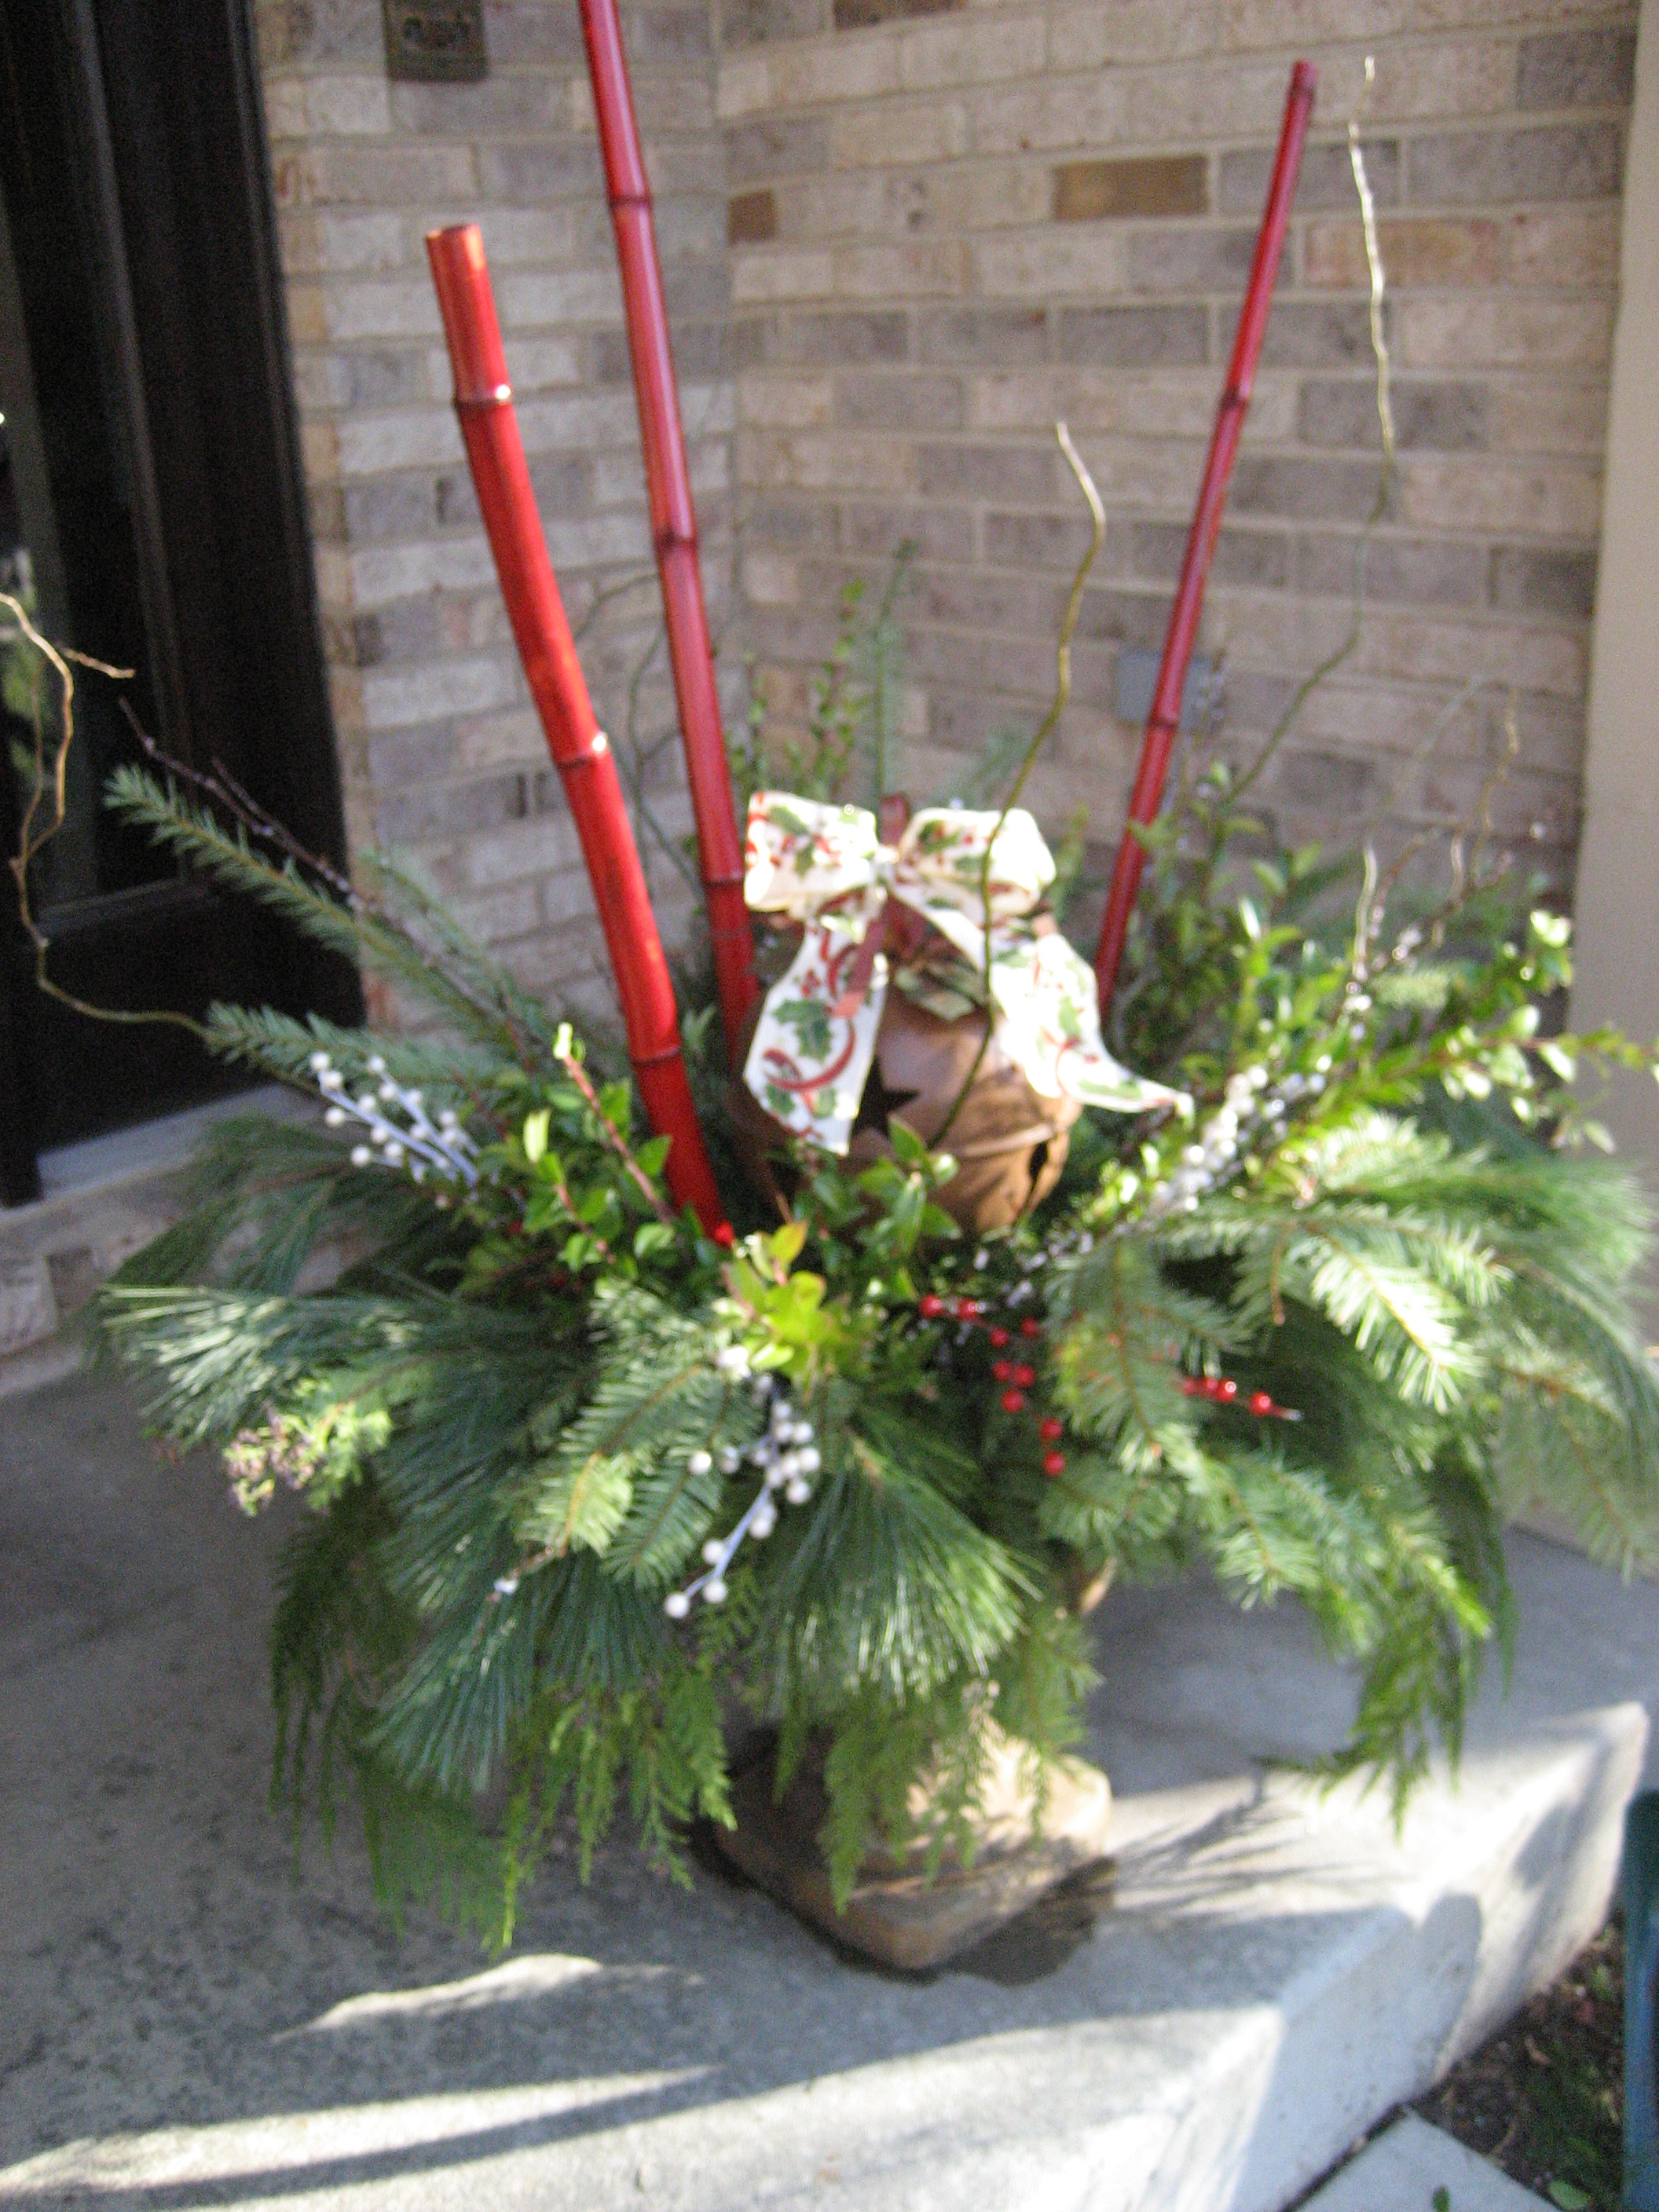 Outdoor Christmas Urns http://moreismoremom.wordpress.com/2010/12/01/gorgeous-do-it-yourself-winter-urns/